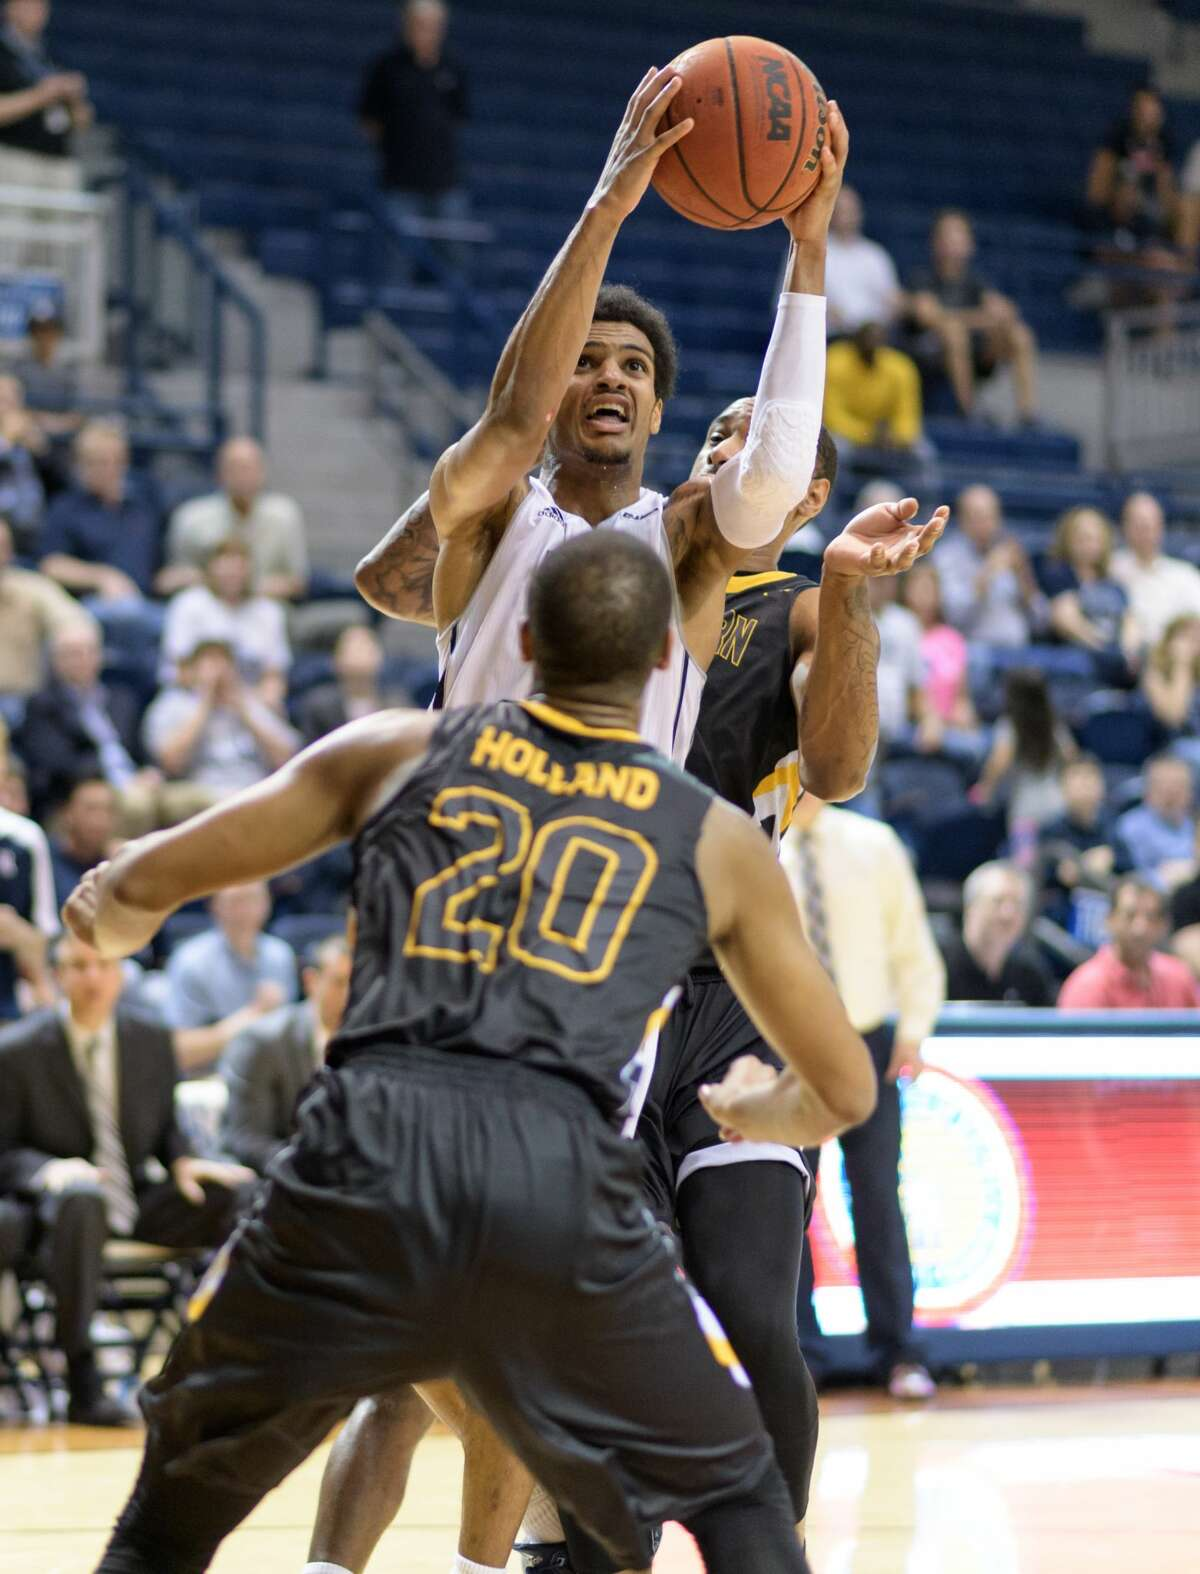 Marcus Evans (2) of the Rice Owls drives for the game winning basket in overtime against the Southern Miss Golden Eagles in a college basketball game on Thursday, February 23, 2017 at Tudor Fieldhouse on Rice Campus.